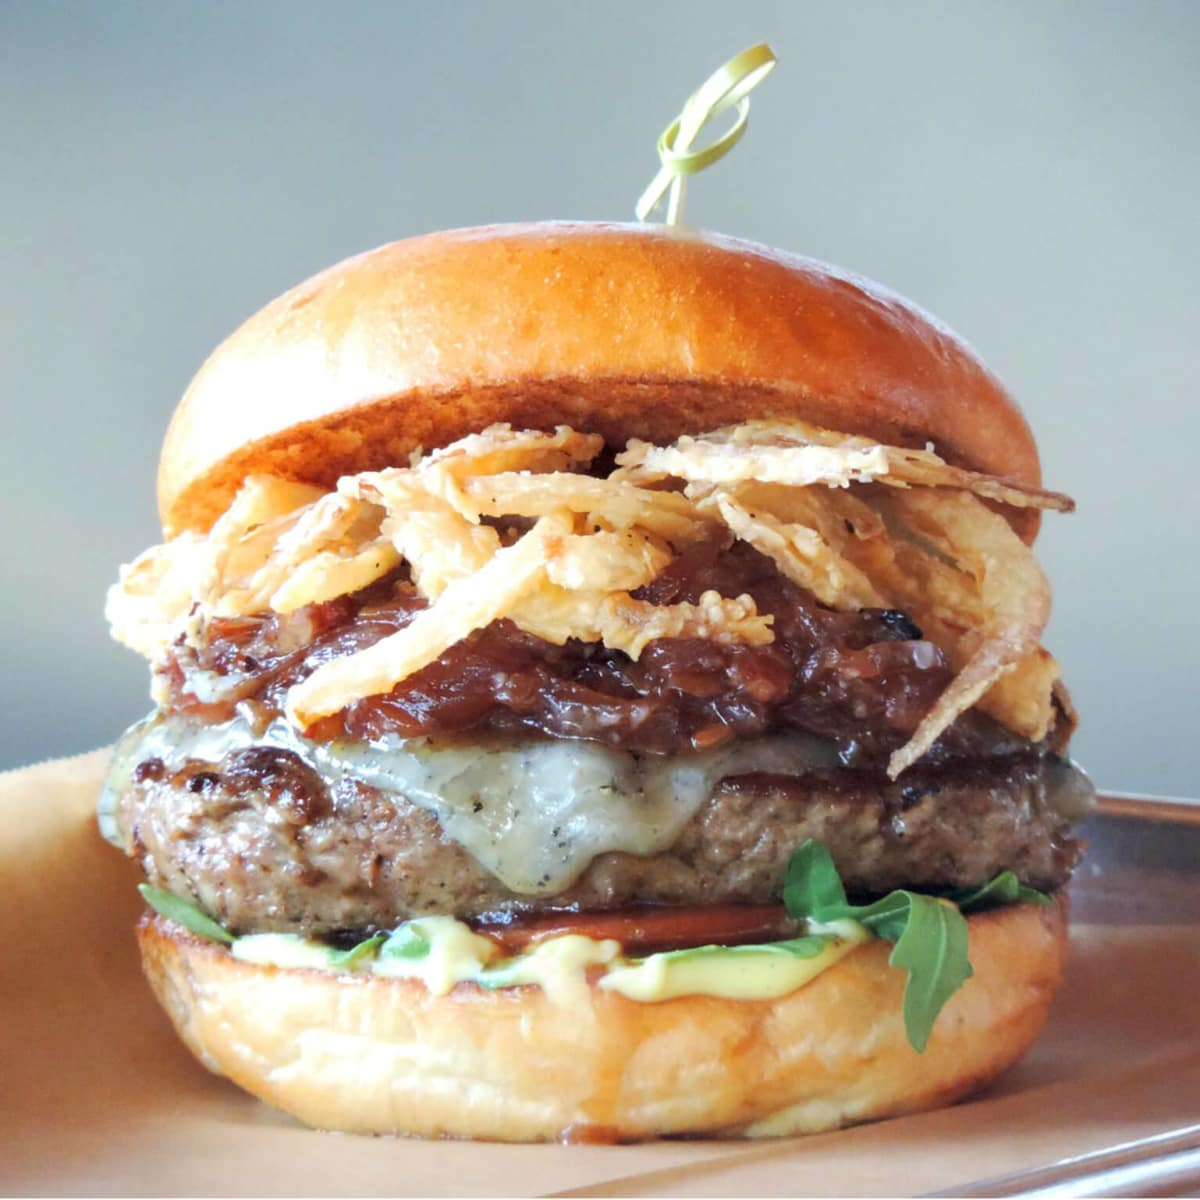 Hopdoddy burger